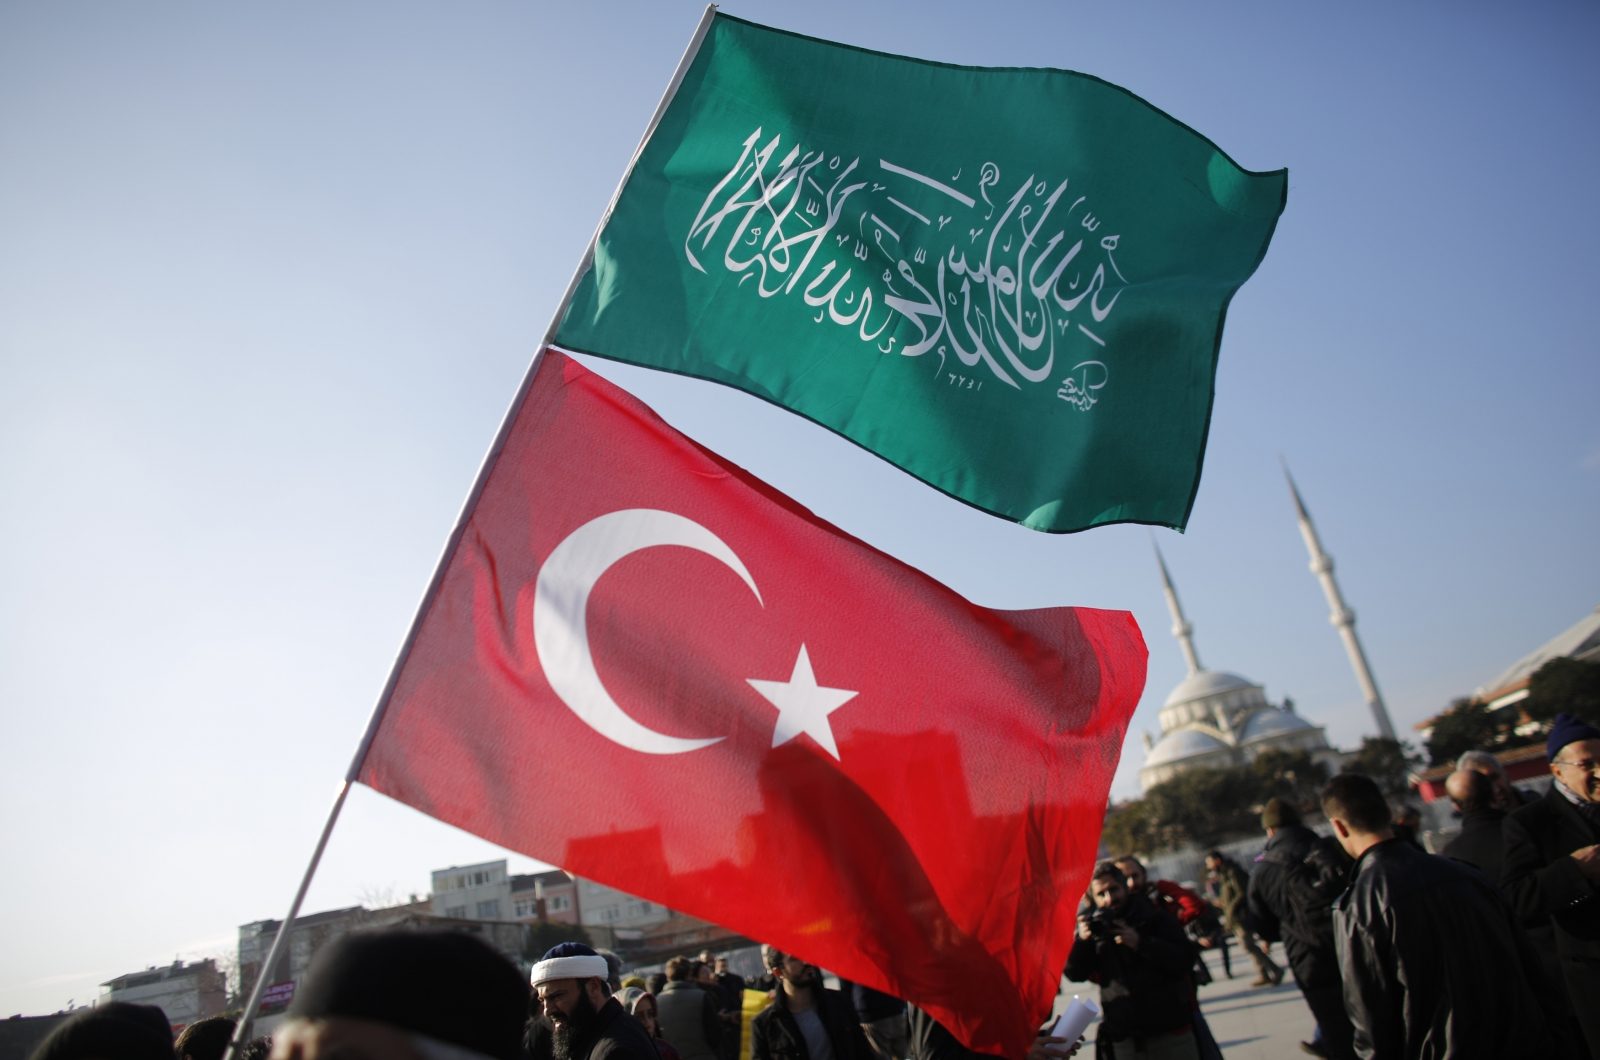 A demonstrator waves Turkish and Islamic flags during a protest against Cumhuriyet, a staunchly secular opposition newspaper, in Istanbul January 15, 2015. Pro-Islamist demonstrators protested against Turkish daily newspaper Cumhuriyet which published a f